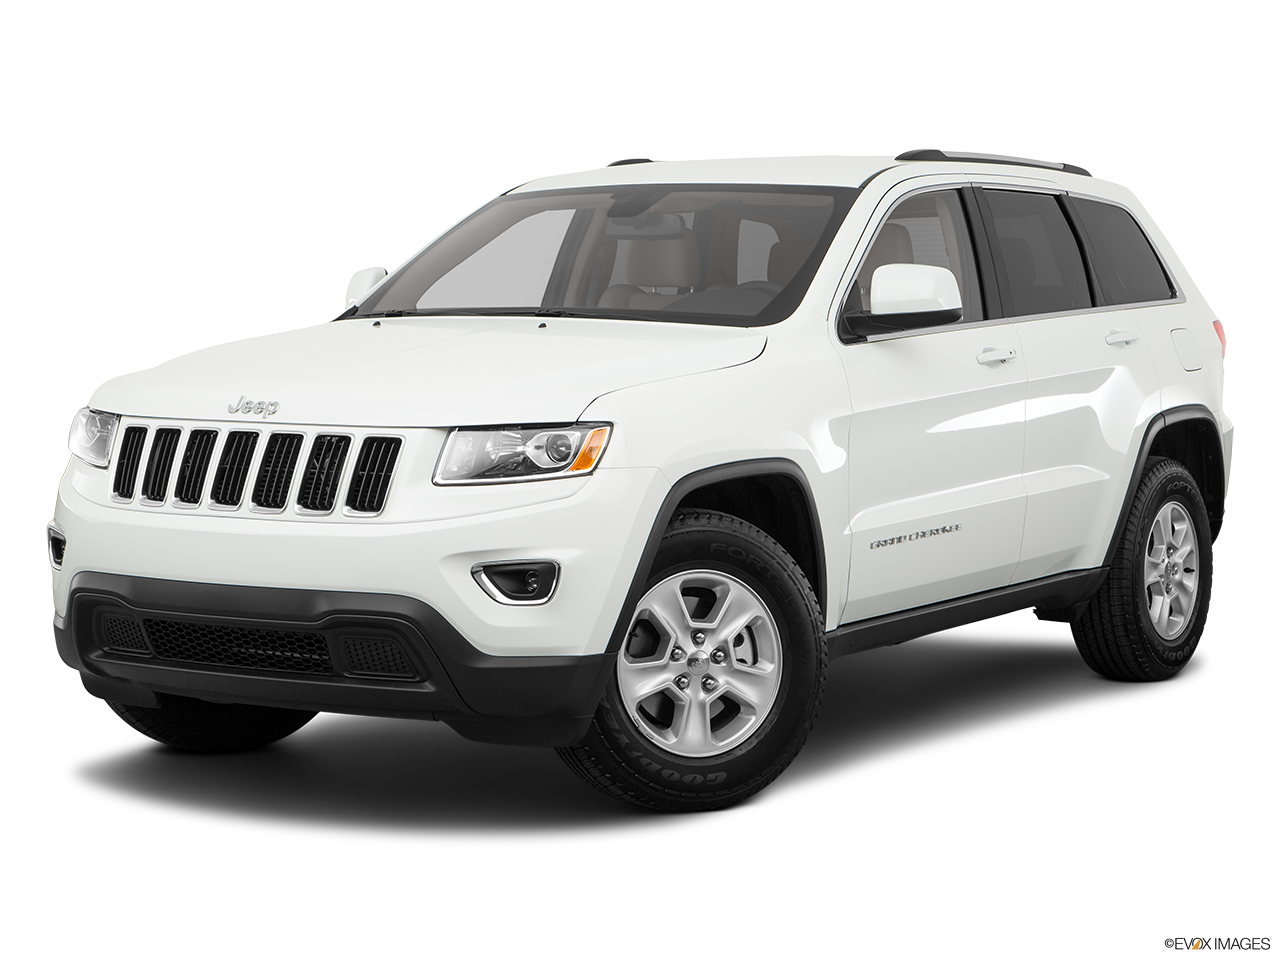 2016 Jeep Grand Cherokee Chicago Sherman Dodge Chrysler Ram 2011 Truck Wiring Diagram Vehicle Chart Test Drive A At